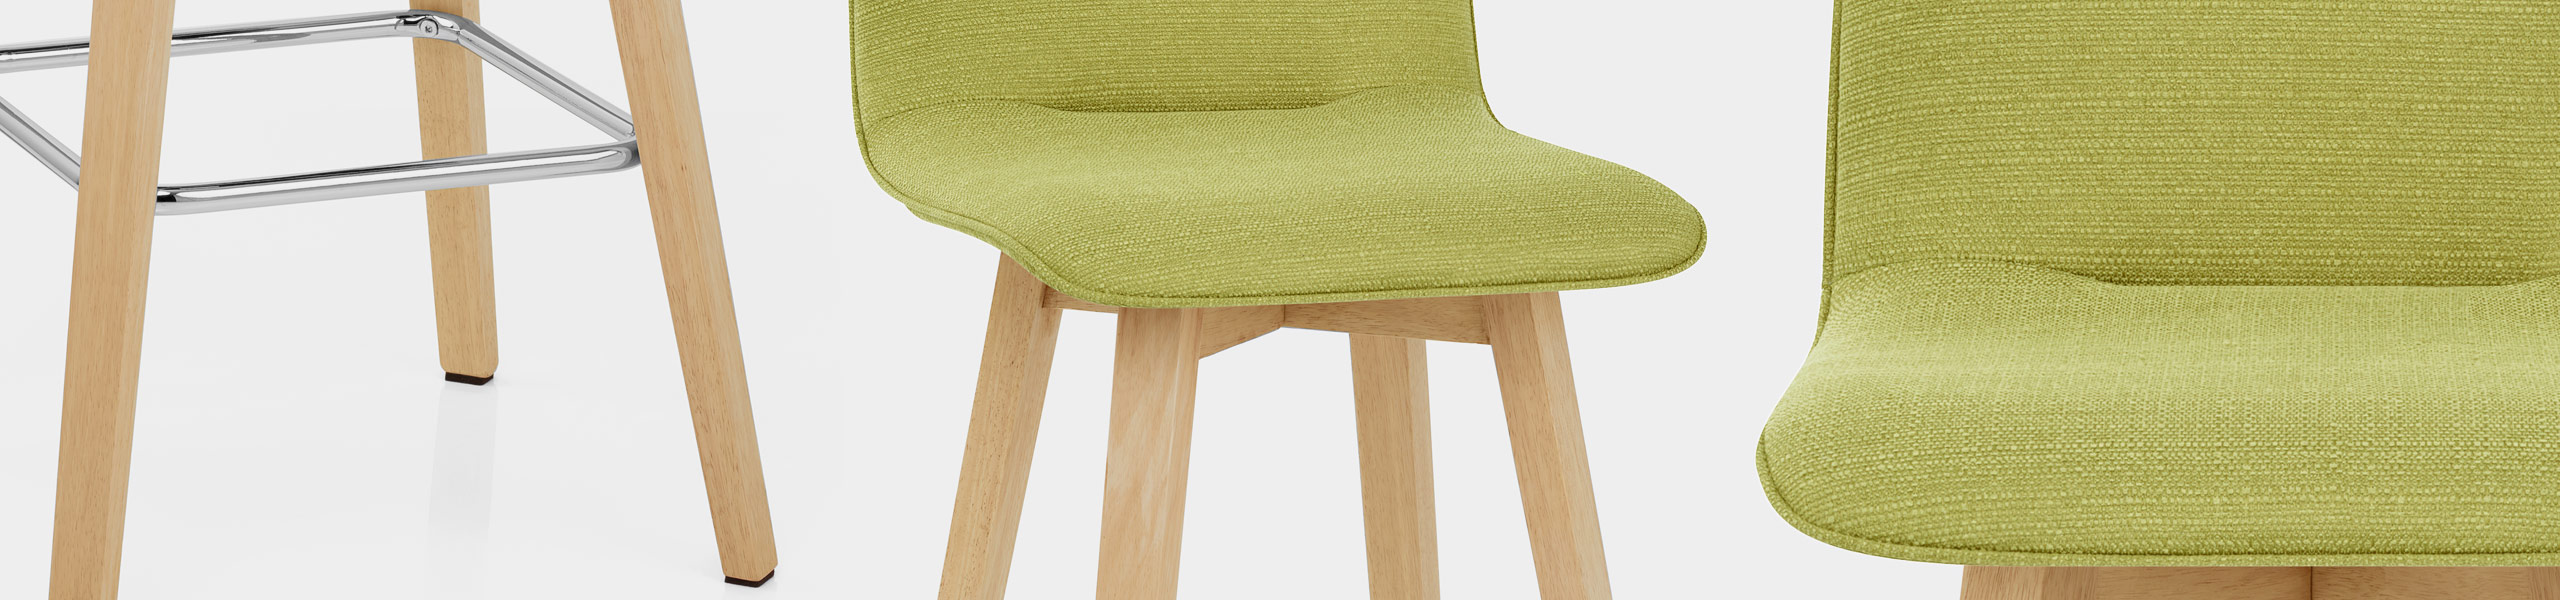 Tide Wooden Stool Green Fabric Video Banner